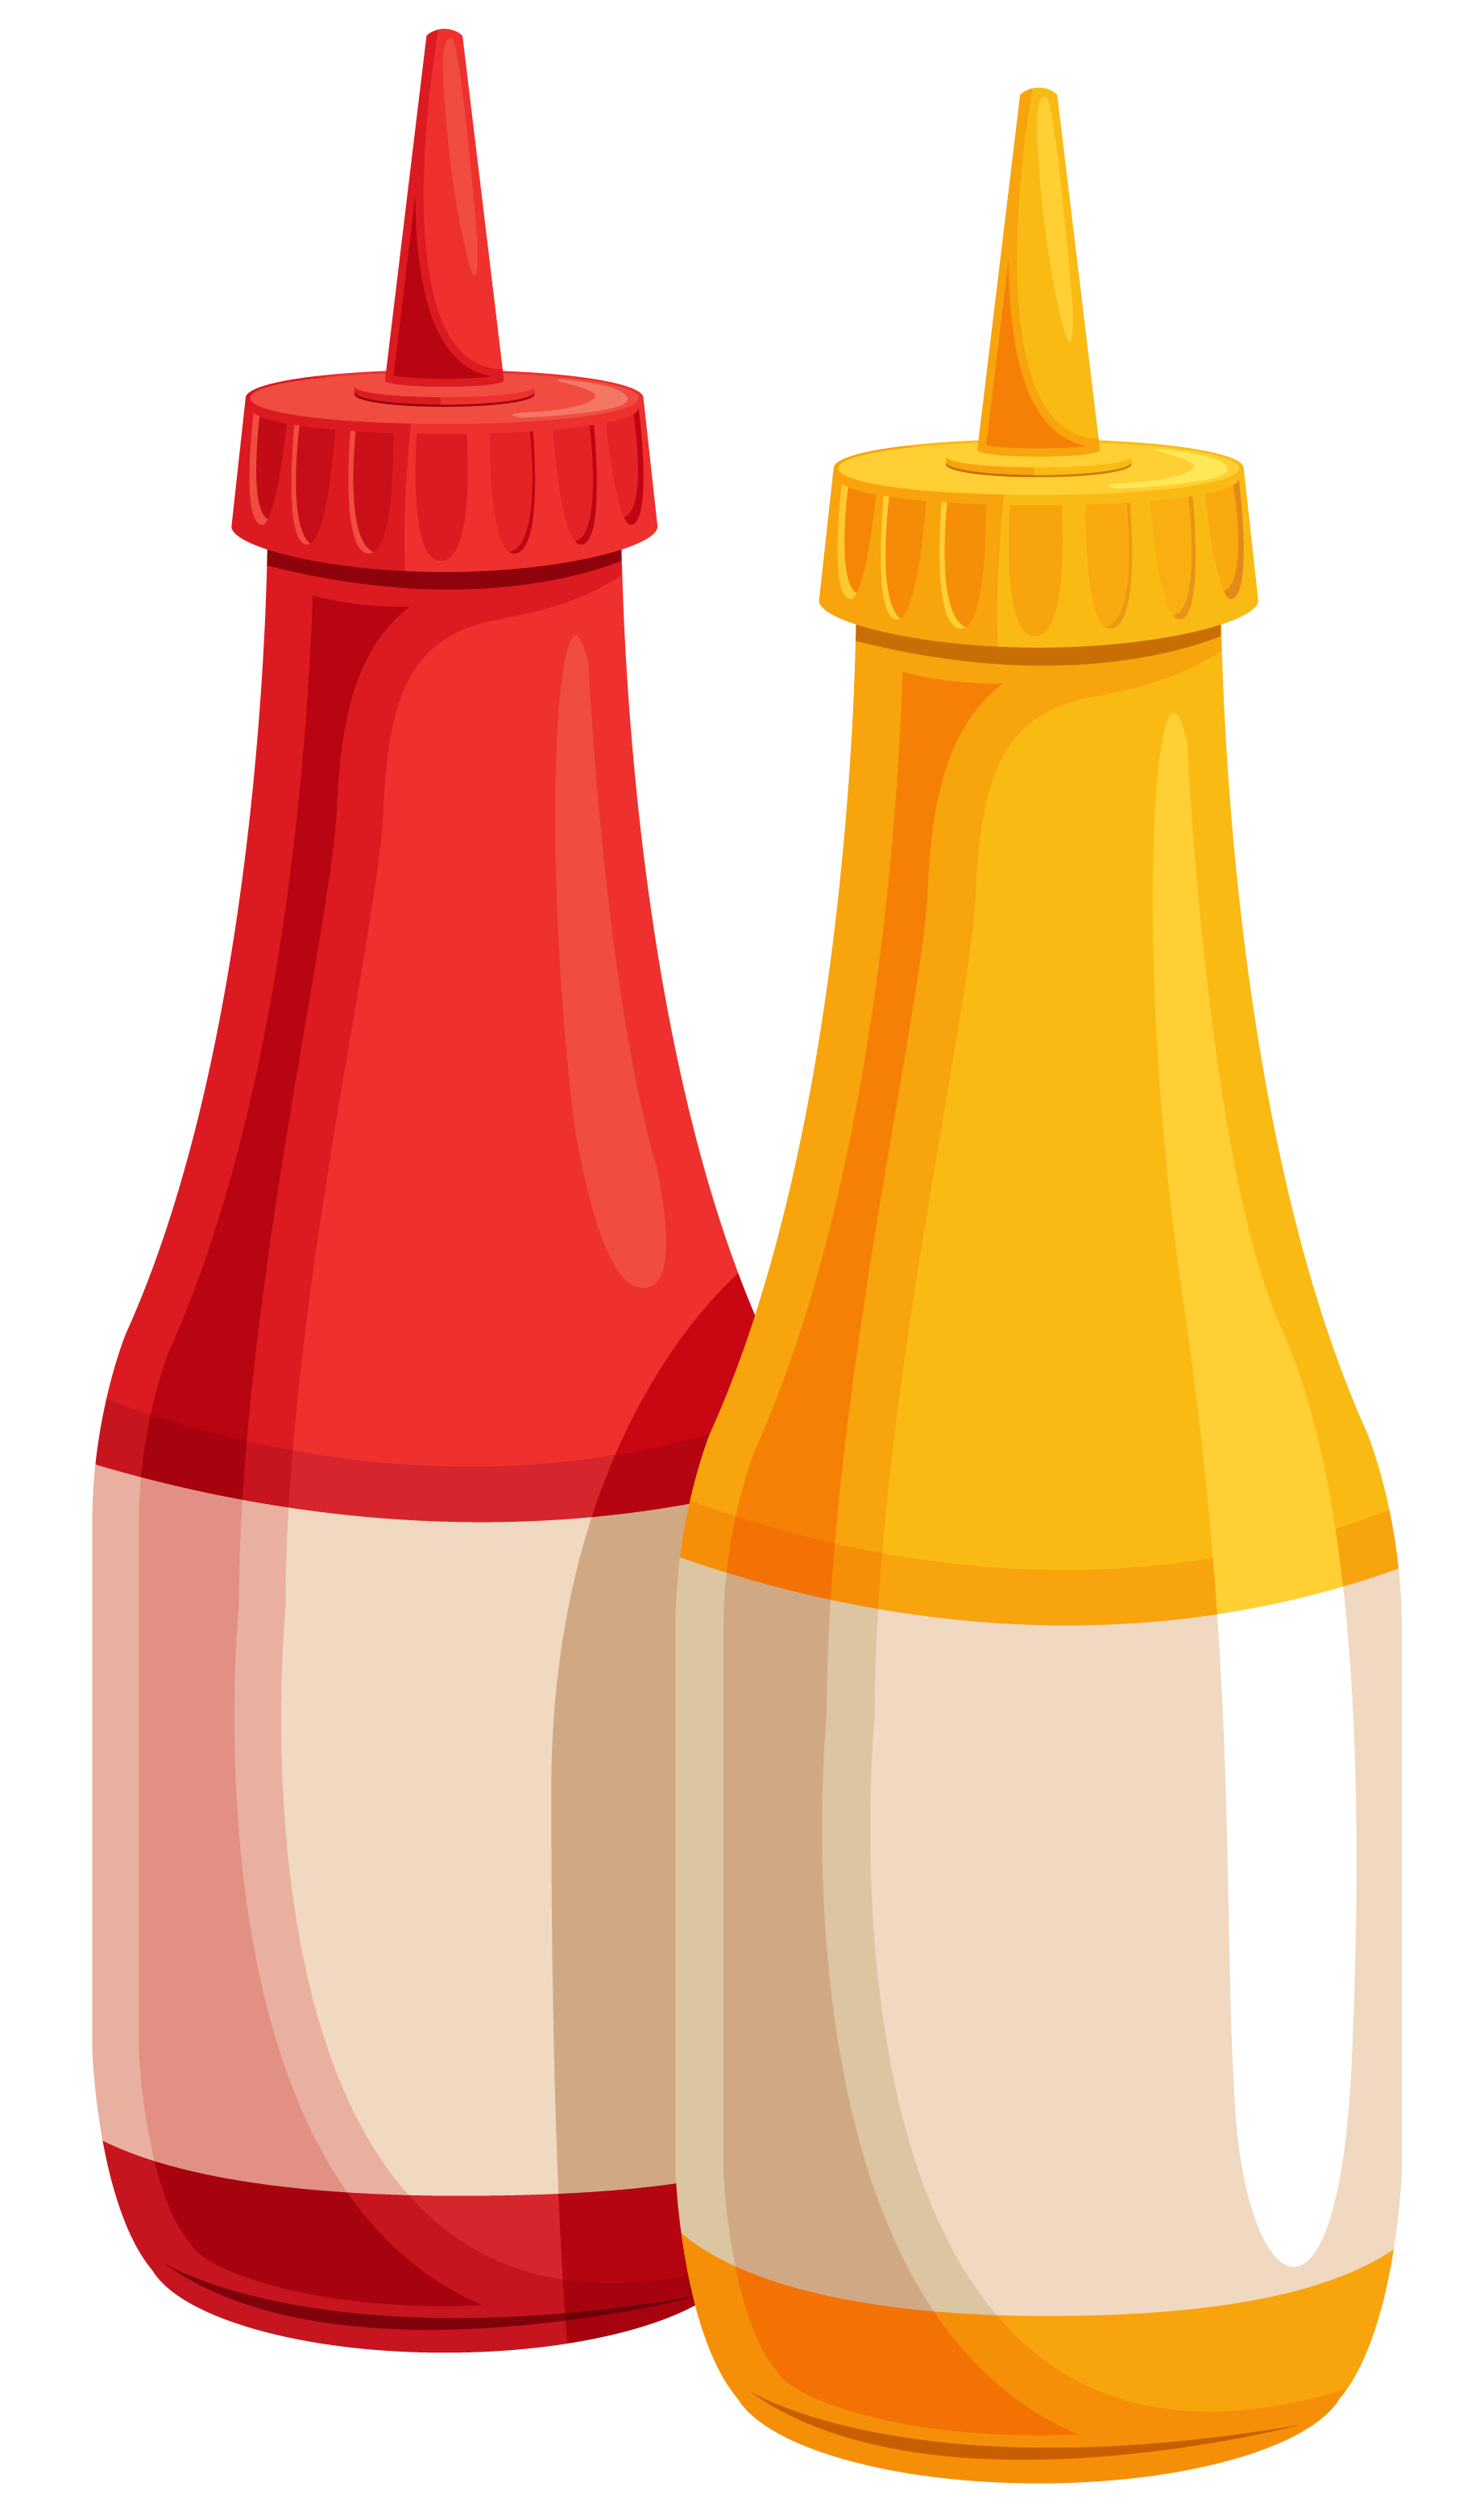 Ketchup and Mustard Bottles PNG Clipart Image.